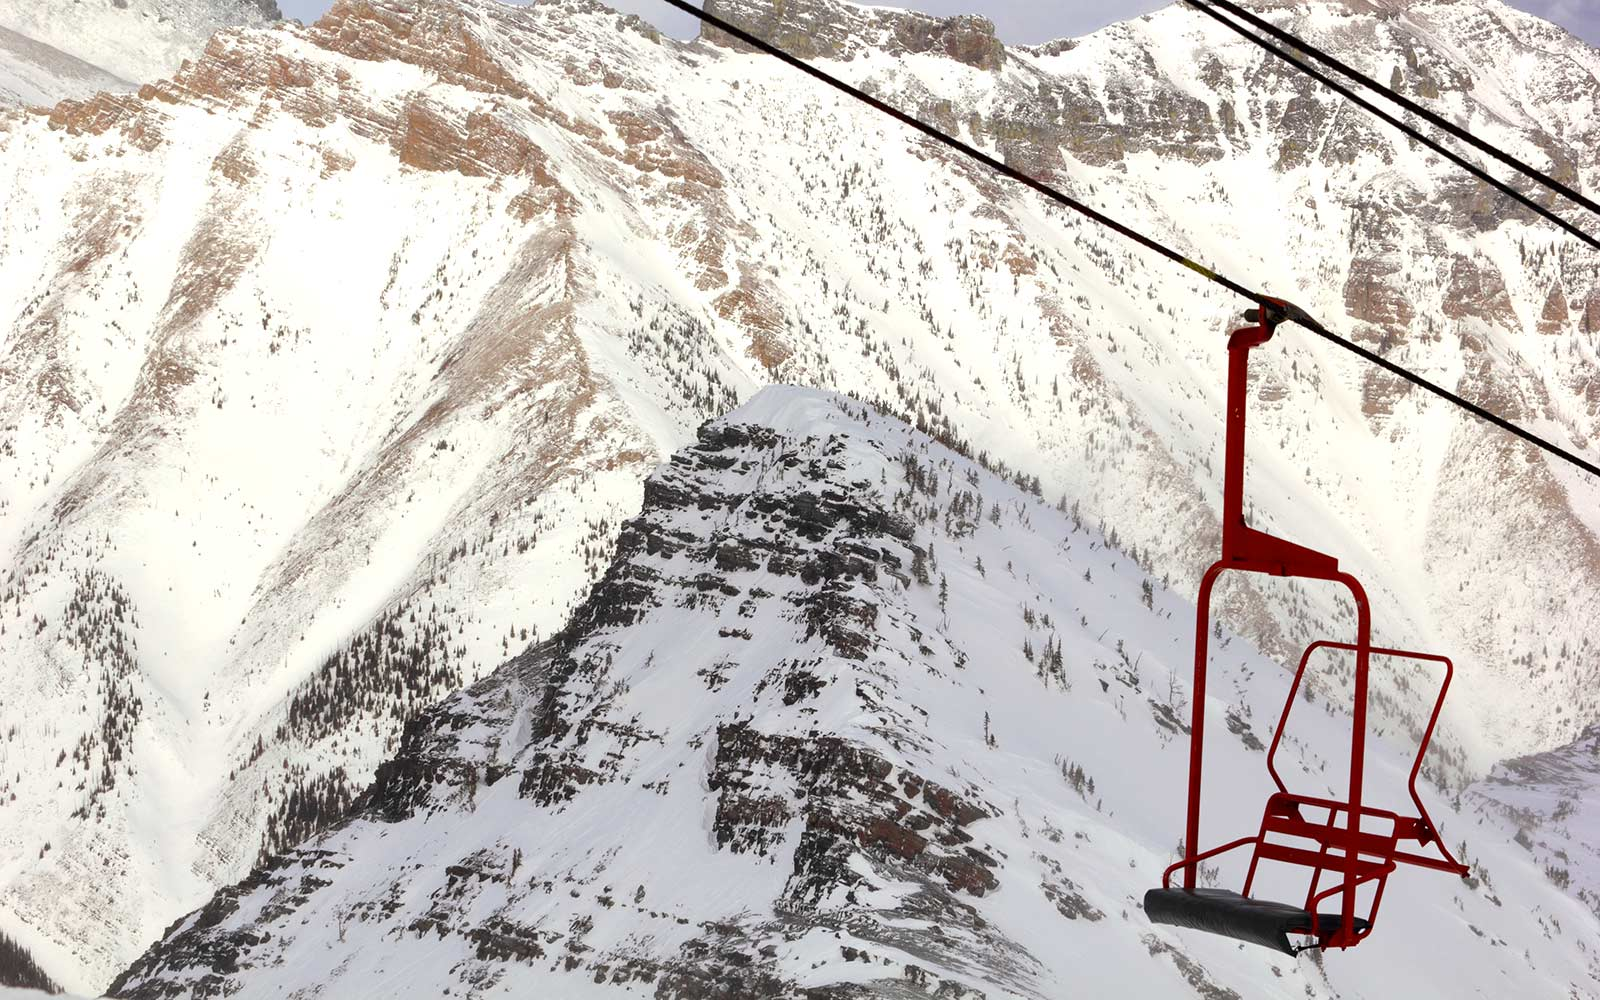 Cheapest ski resorts